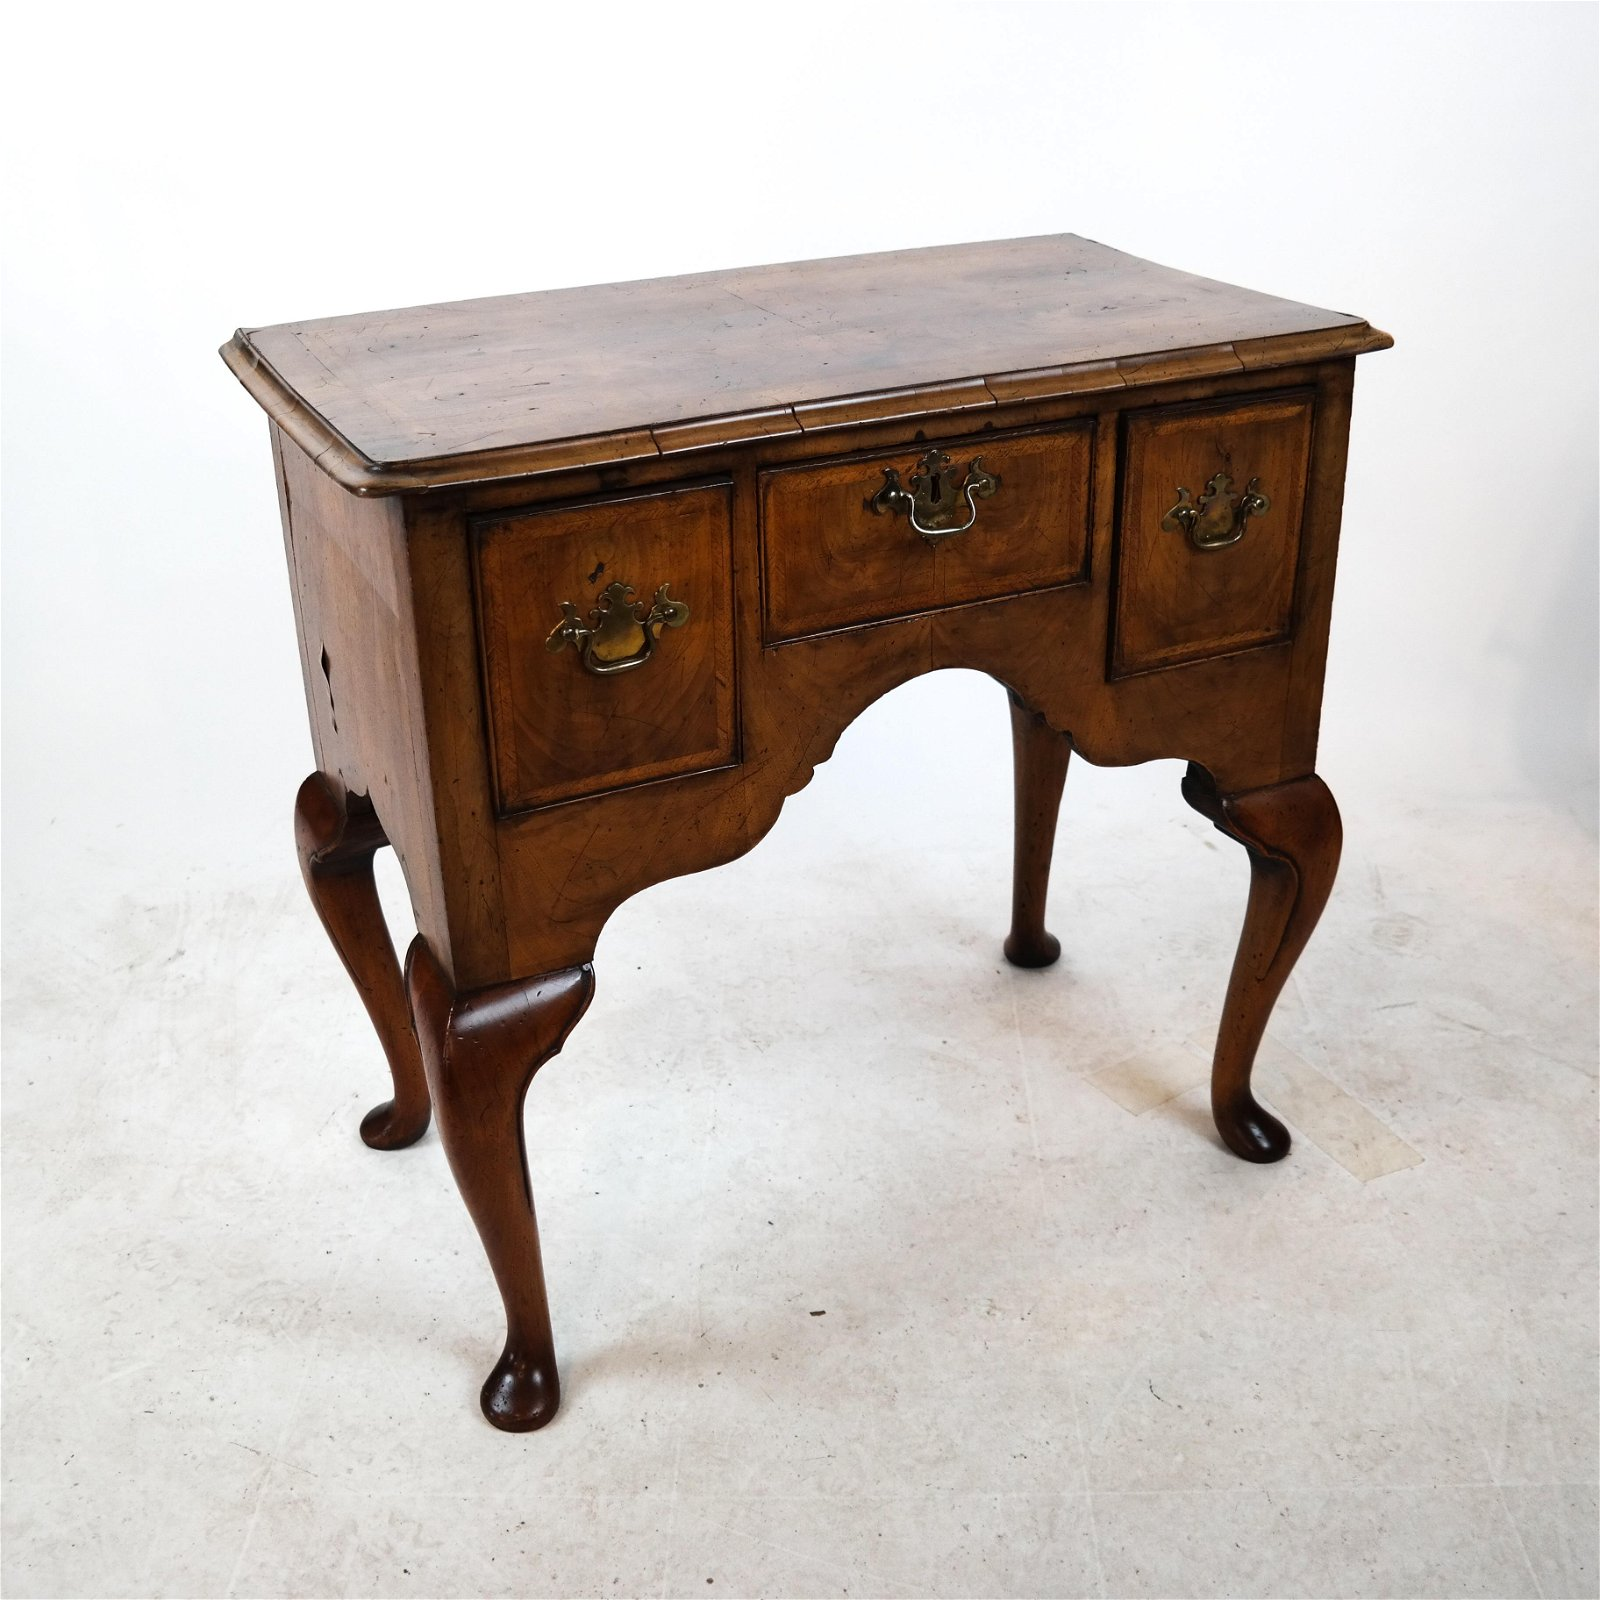 Queen Anne-Style Mahogany Inlaid Lowboy